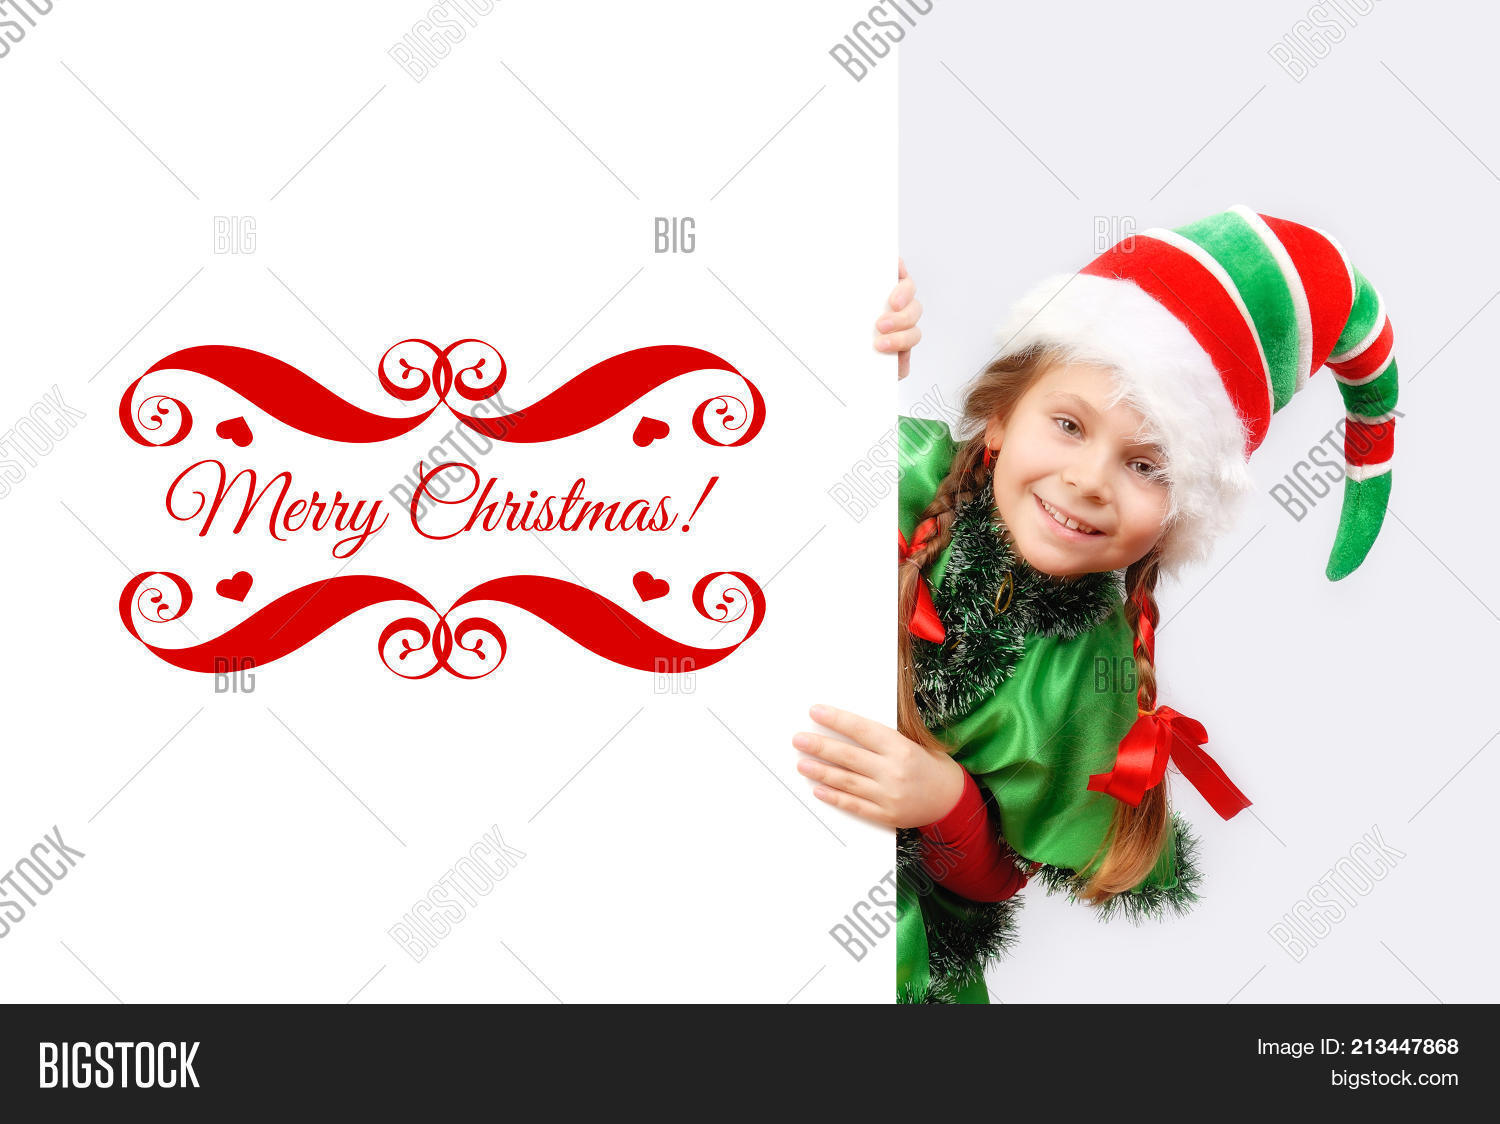 Girl Suit Christmas Image & Photo (Free Trial) | Bigstock